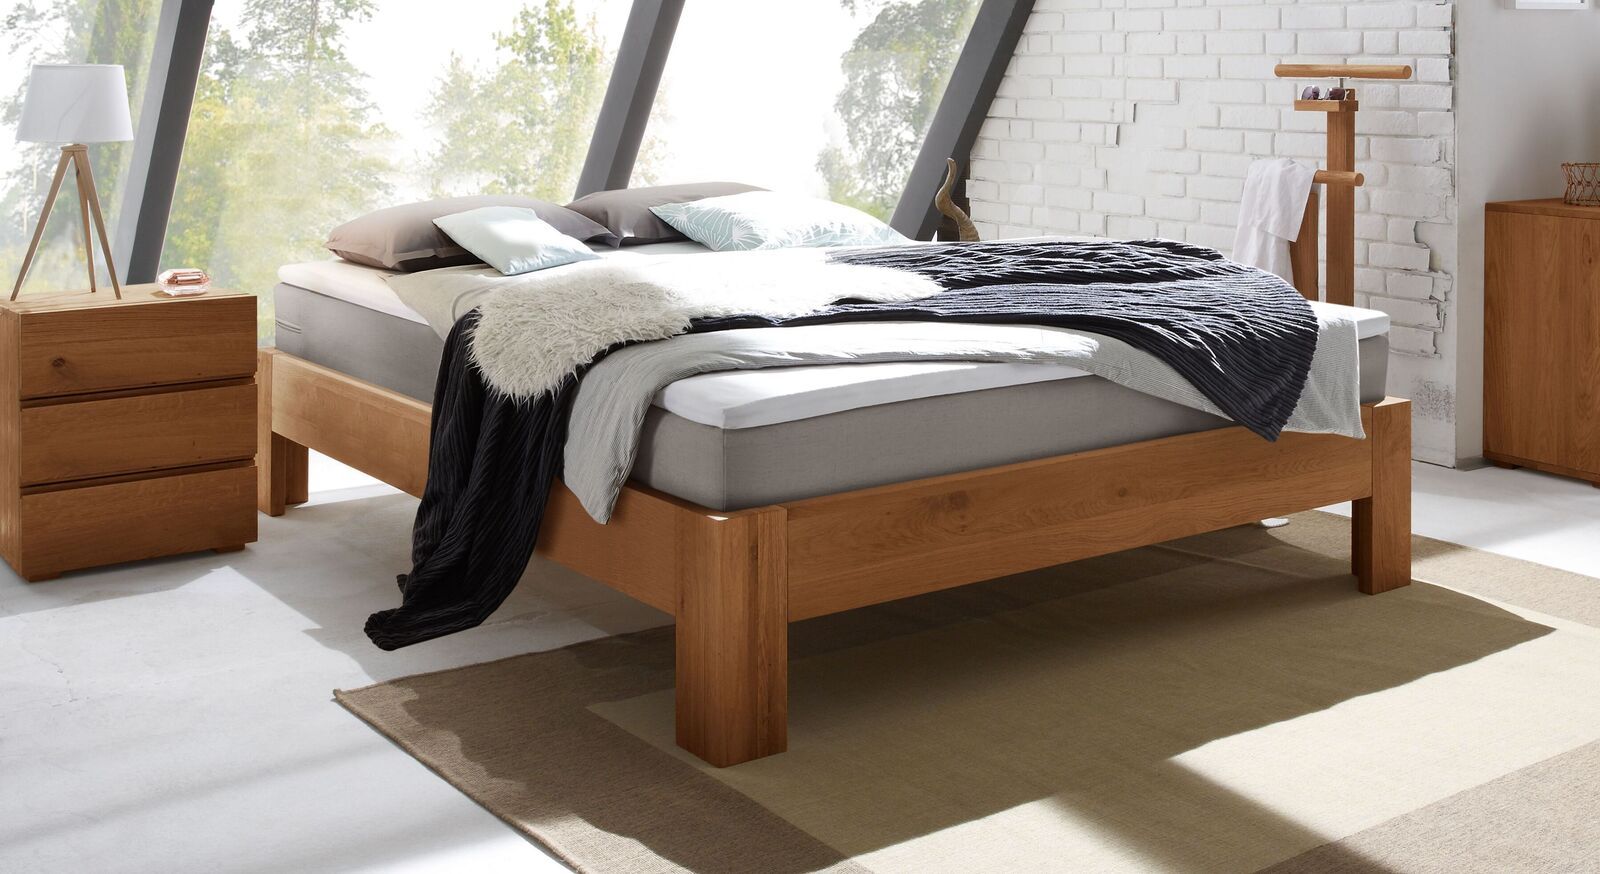 Boxspringliege Kingston aus Eiche Cognac